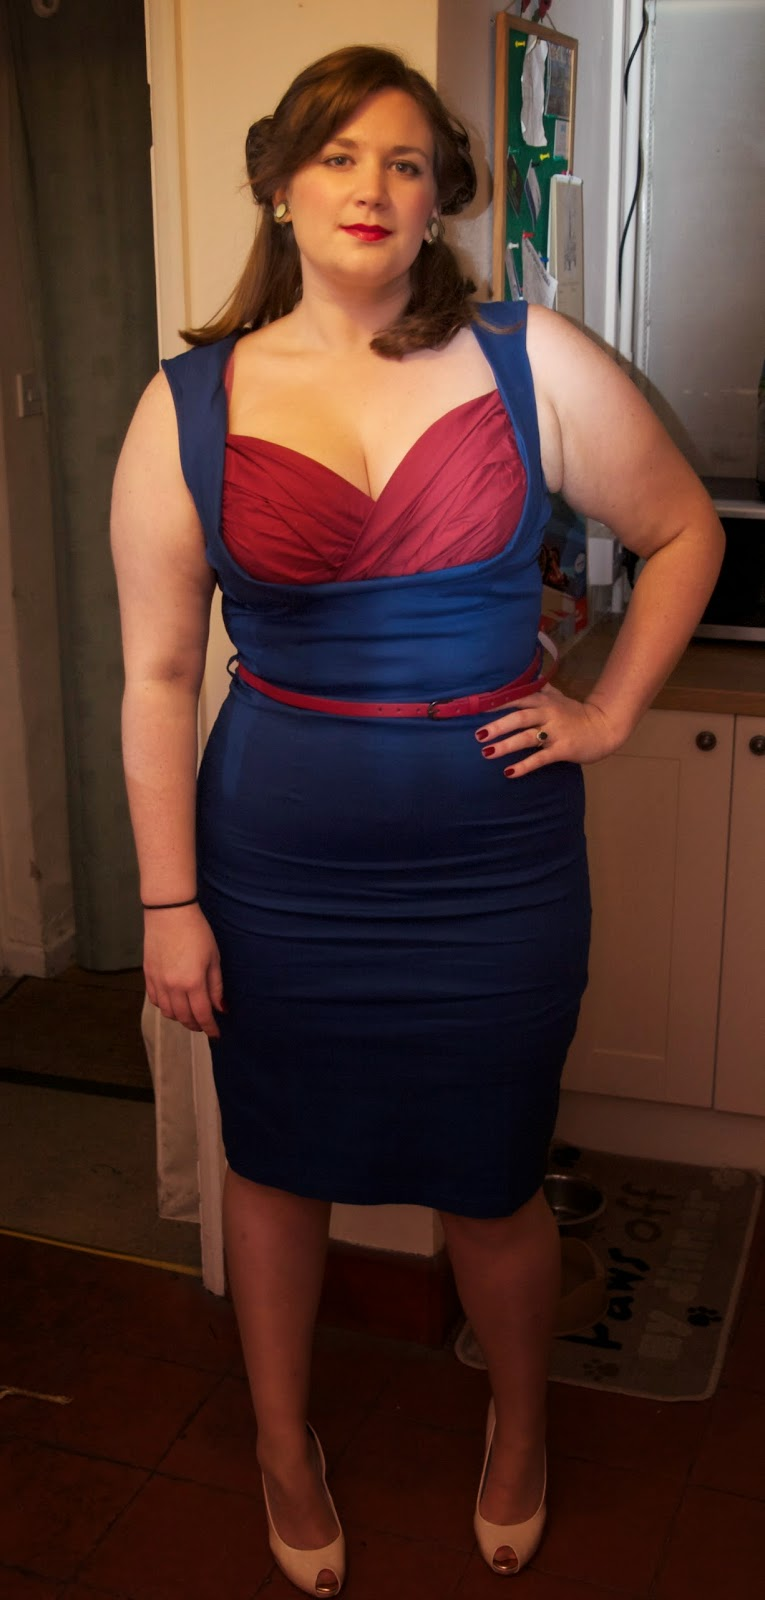 Curvy Girl Thin: A Pin-Up Swoon